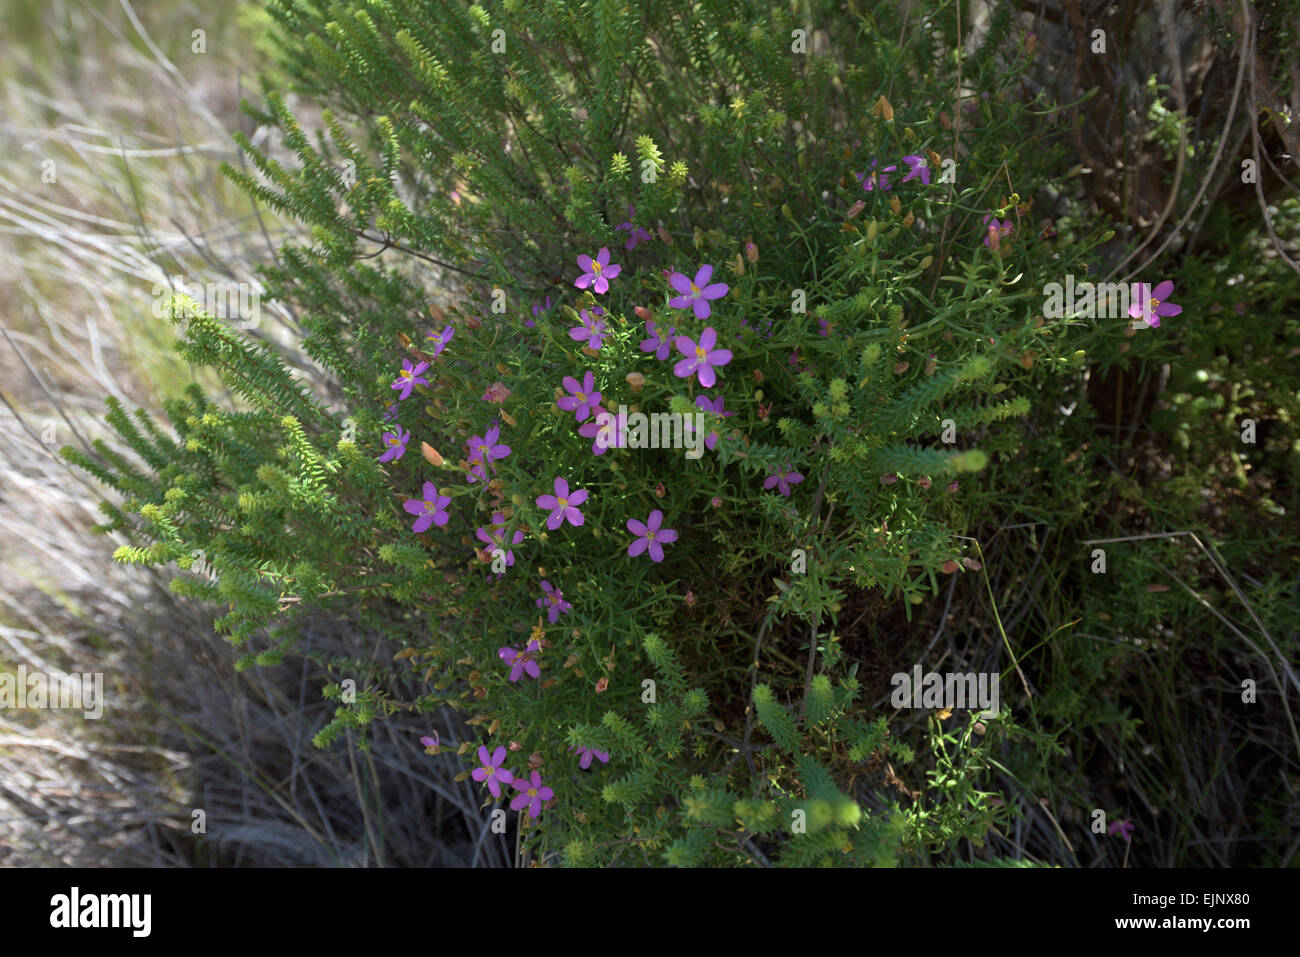 Bush small purple flowers south stock photos bush small purple bush with small purple flowers south africa stock image mightylinksfo